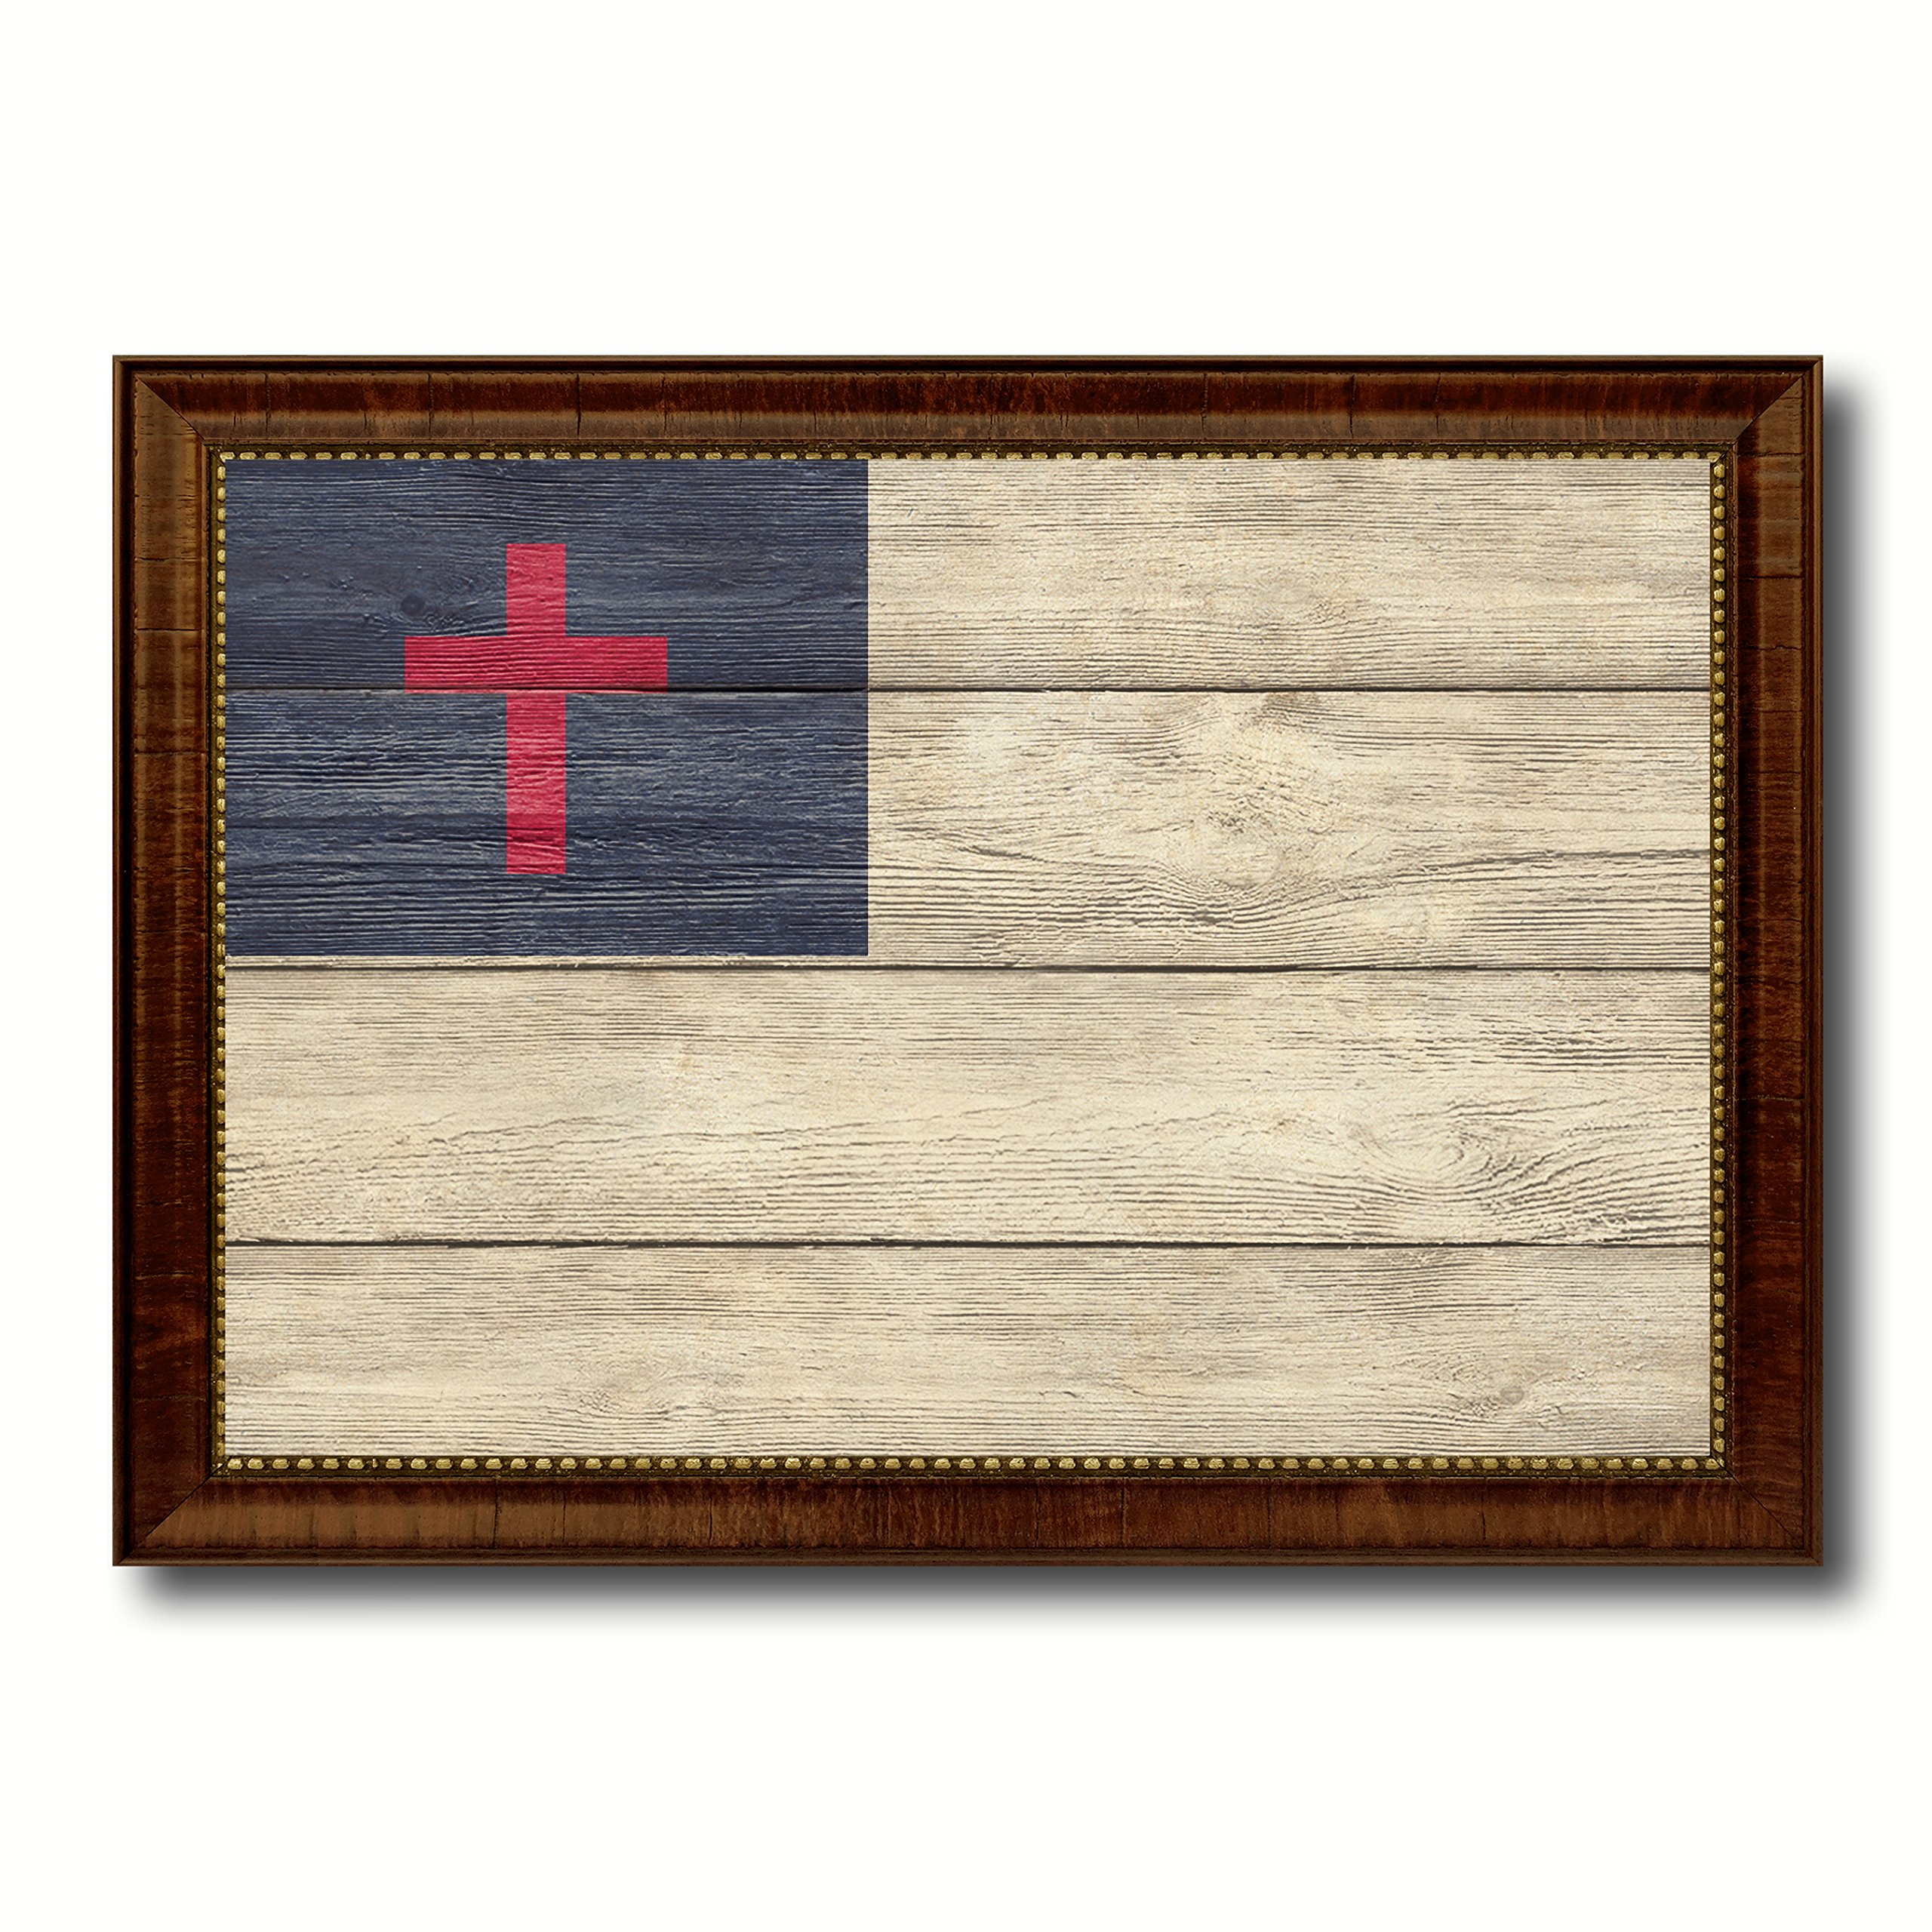 Kayso Christian Religious Military Flag Texture Canvas Print Brown Picture Frame Home Decor Wall Art Decoration Gift Ideas Signs 27''X39''